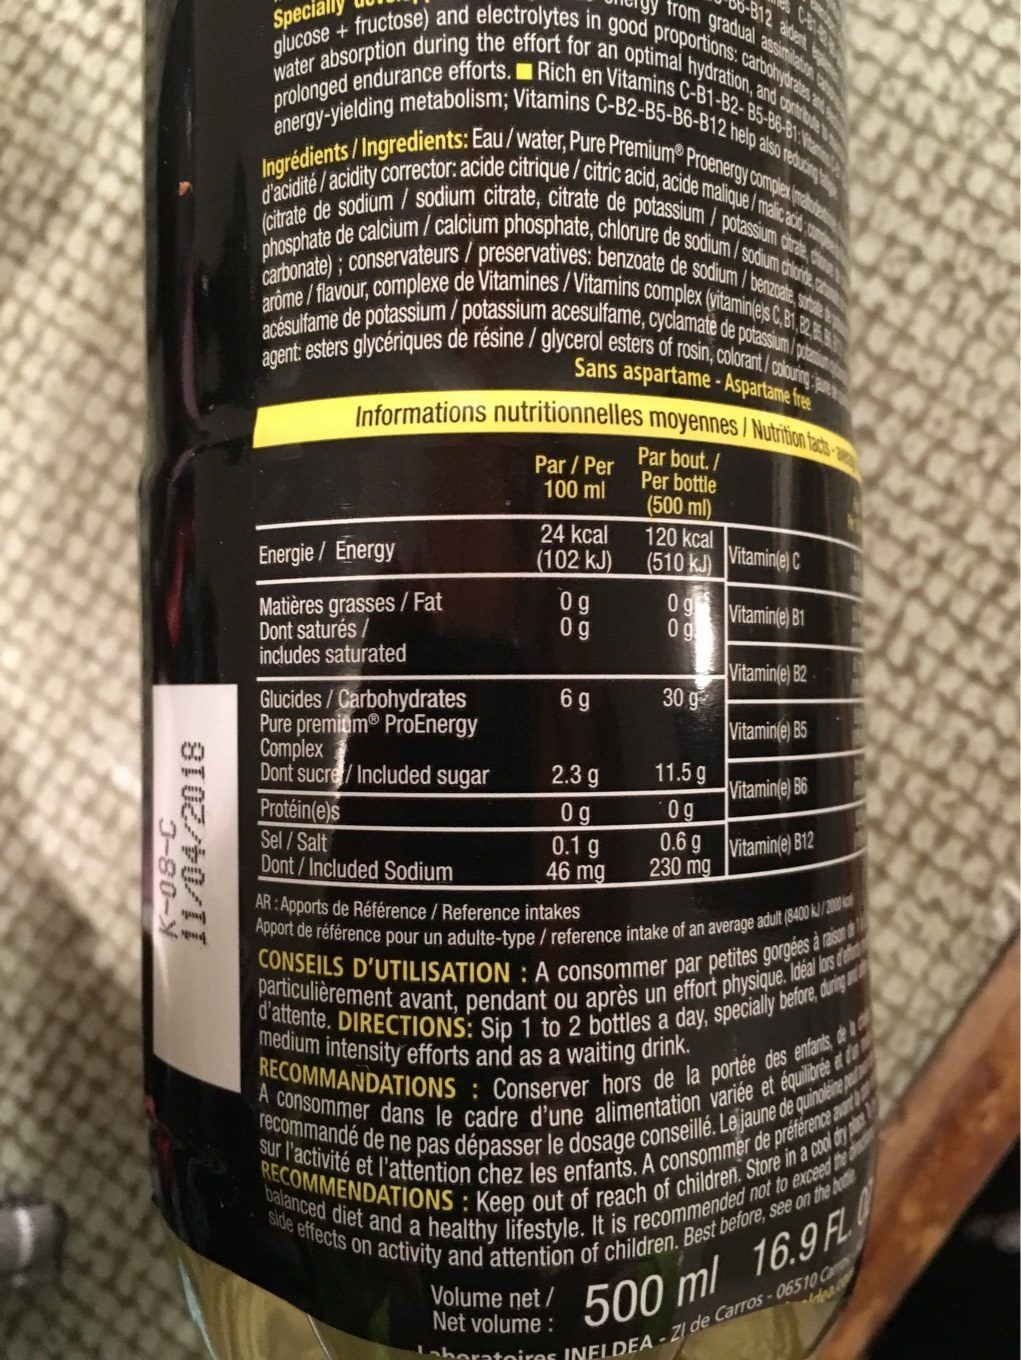 Mineral Drink STC Nutrition - Informations nutritionnelles - fr